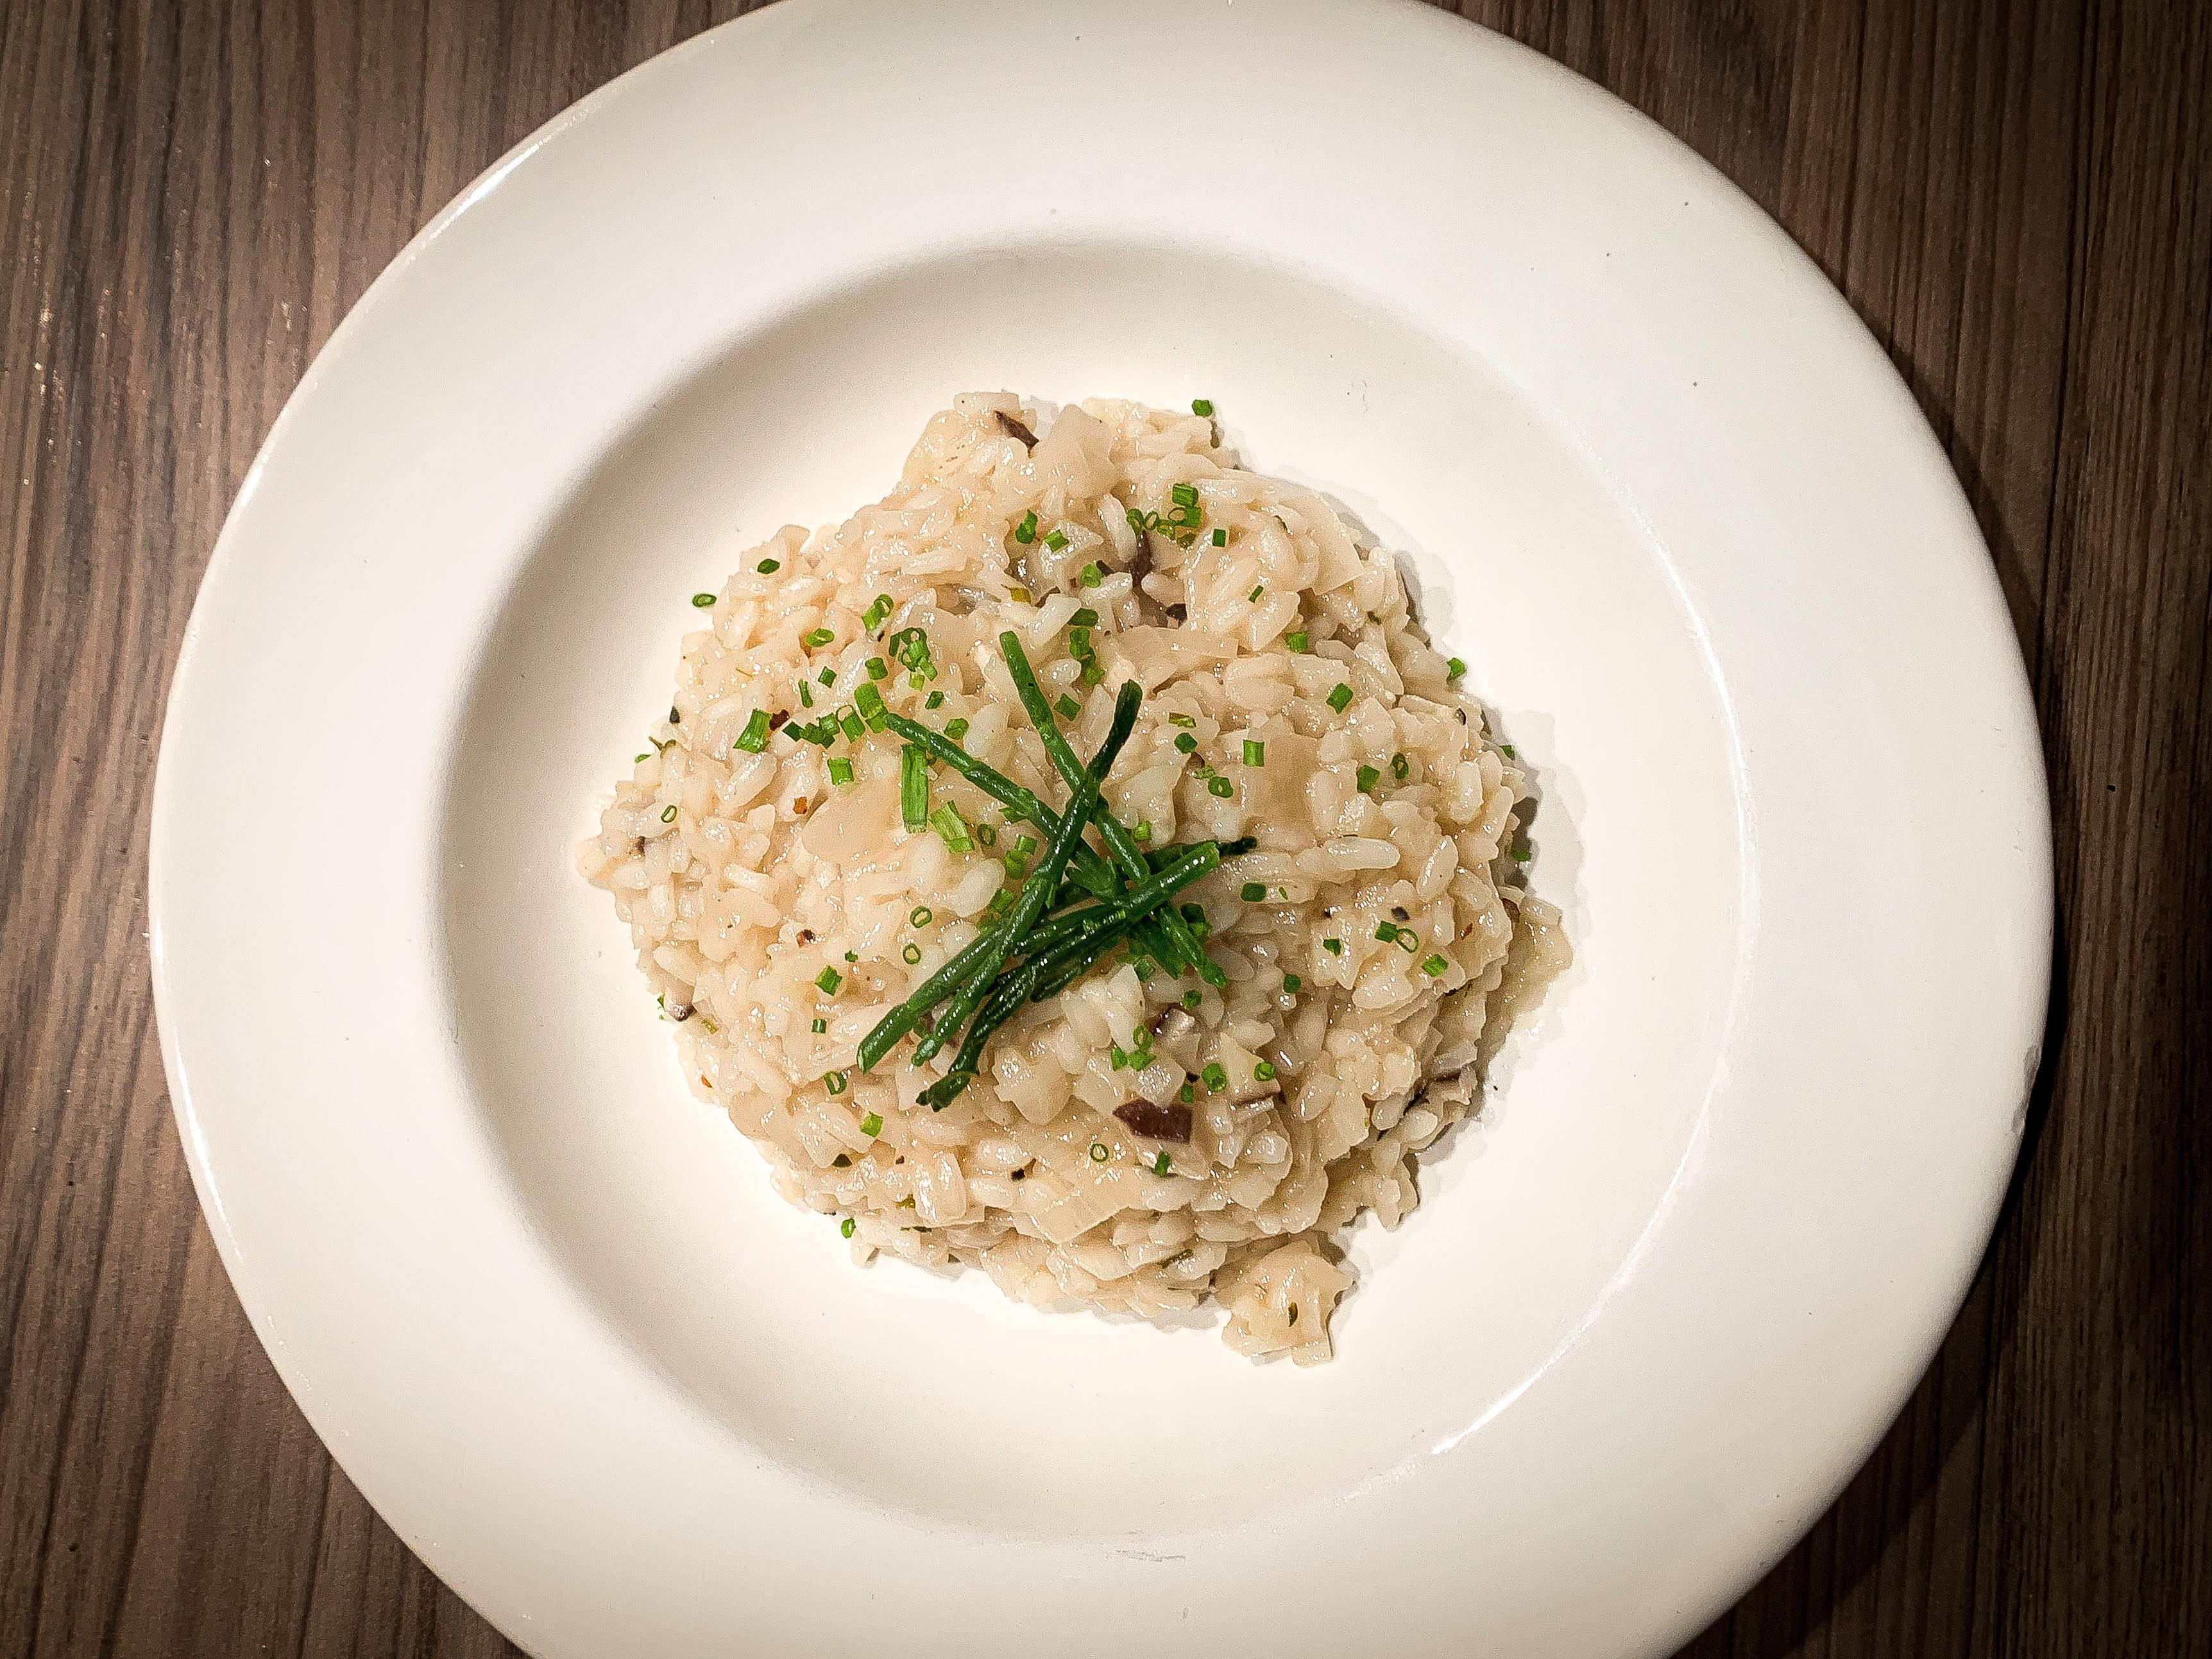 Leftlion No Twelve S Caramel Artichoke And Truffle Risotto Recipe